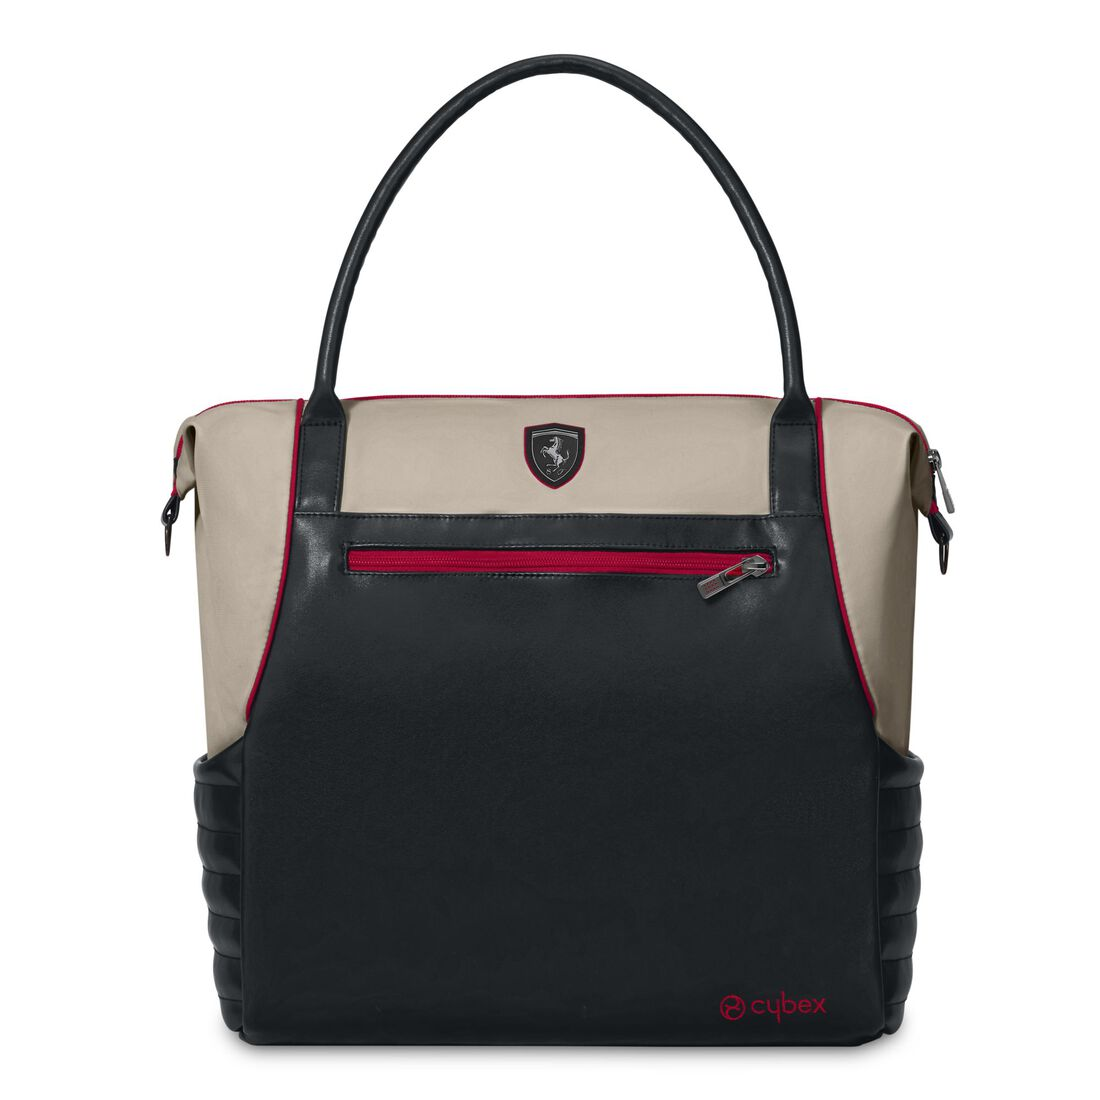 CYBEX Changing Bag - Ferrari Silver Grey in Ferrari Silver Grey large image number 1